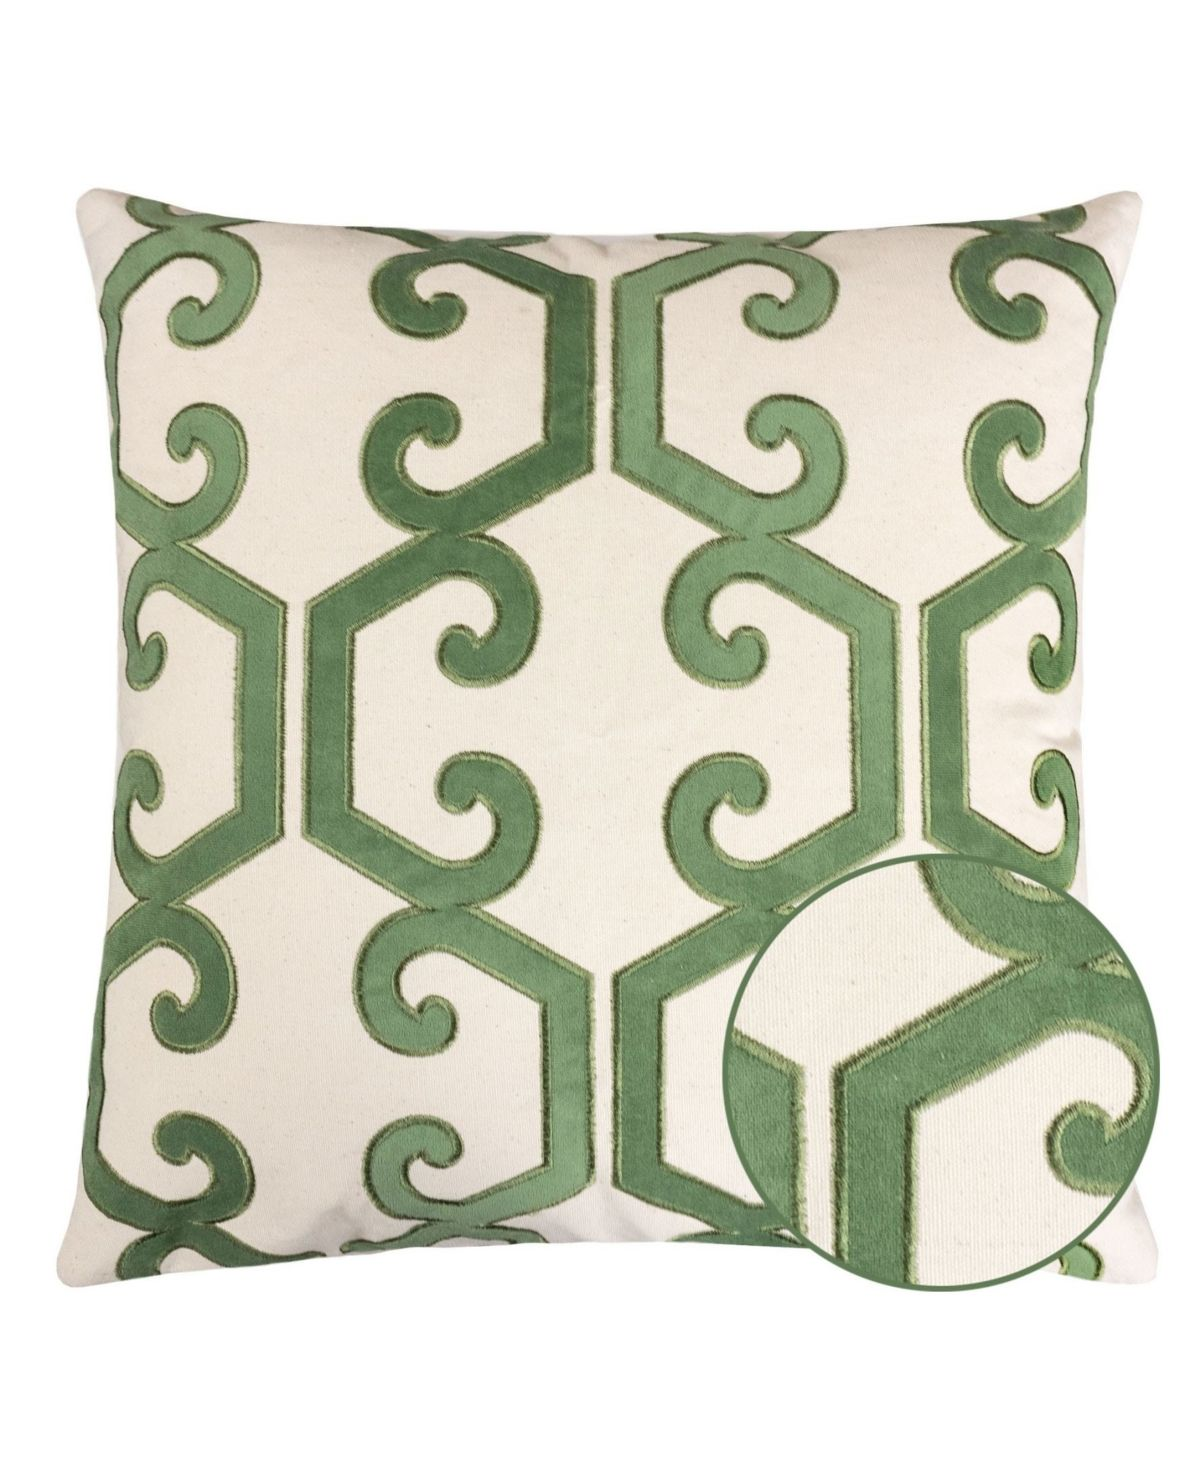 Homey Cozy Carly Applique Embroidery Square Decorative Throw Pillow - Green